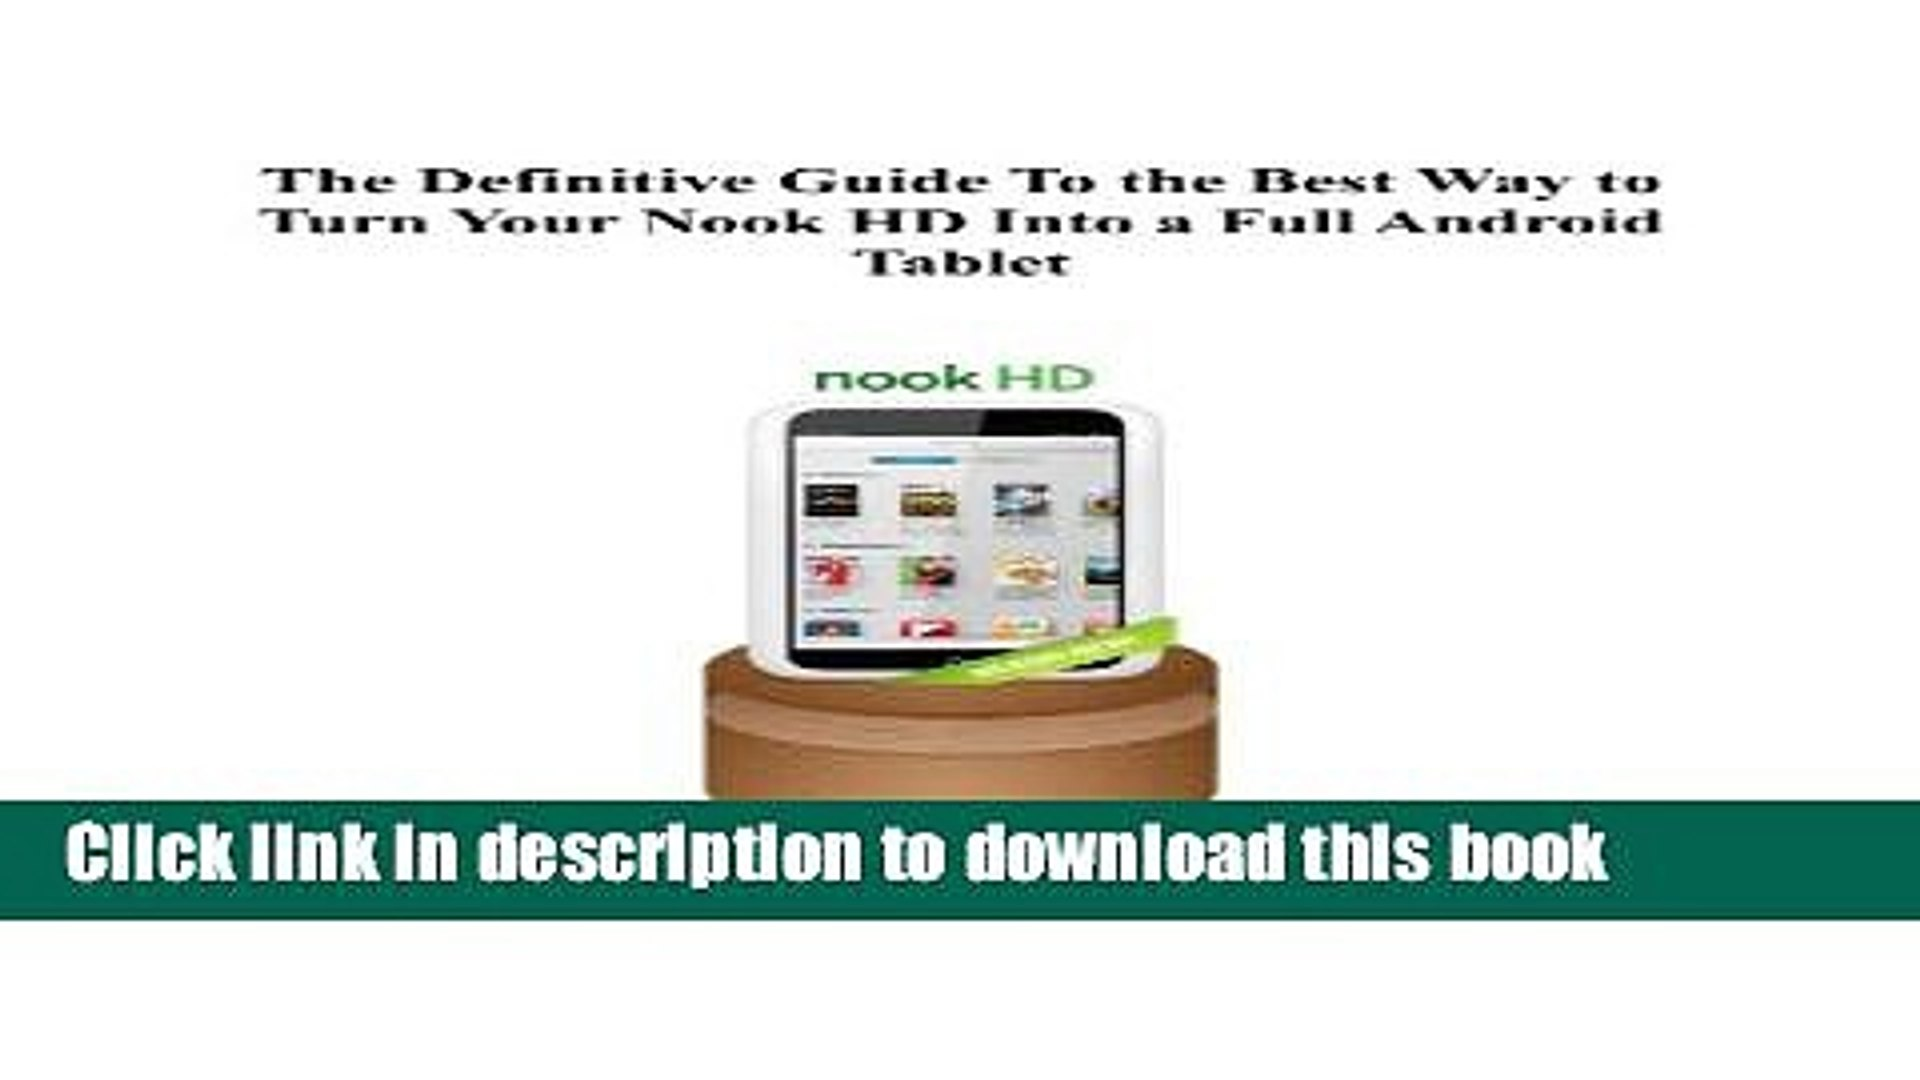 Download The Definitive Guide To the Best Way to Turn Your Nook HD Into a Full Android Tablet (The